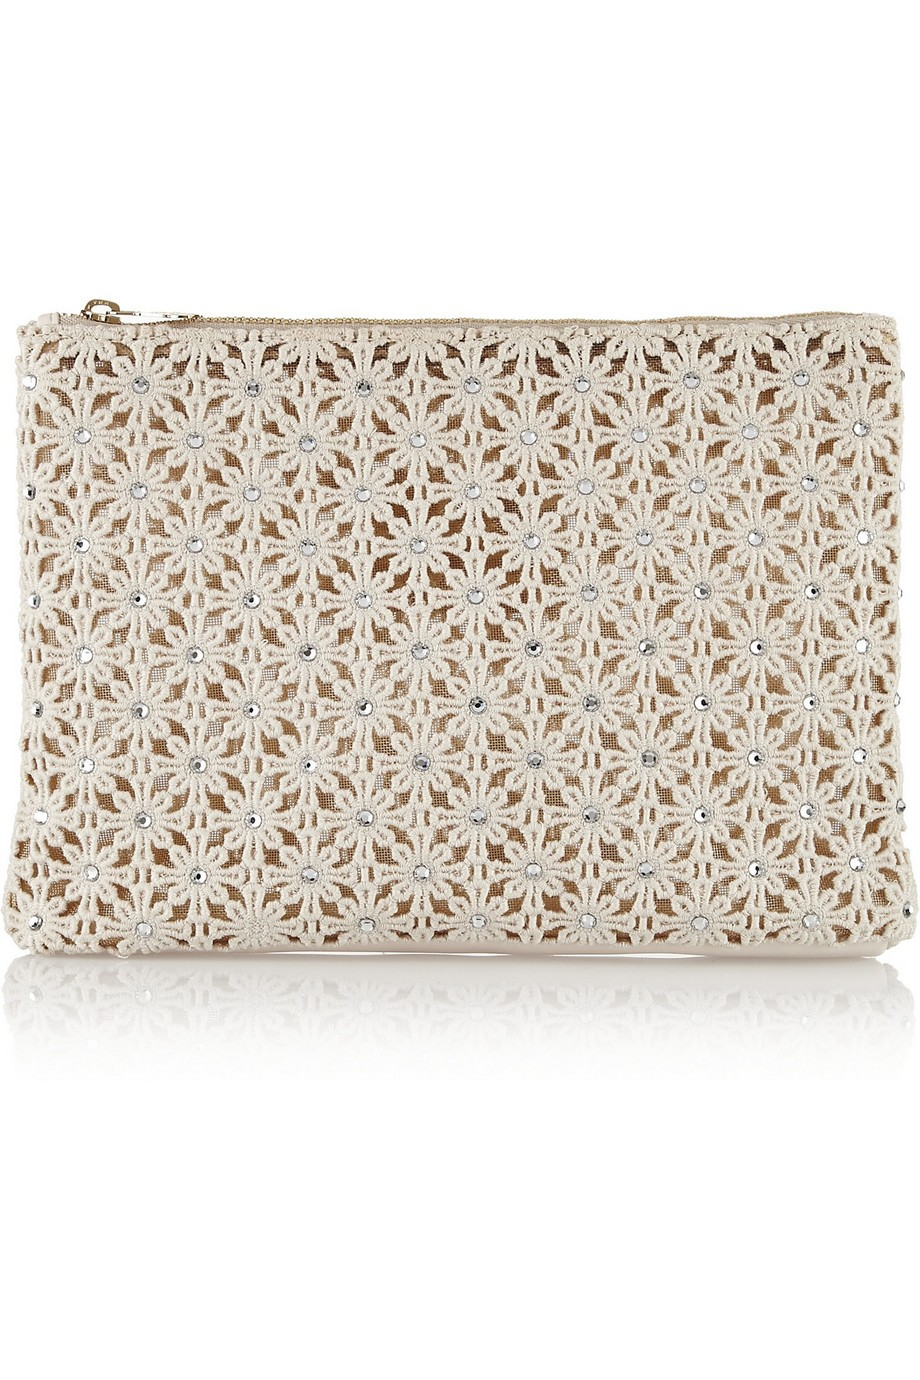 Crystal-embellished crocheted clutch